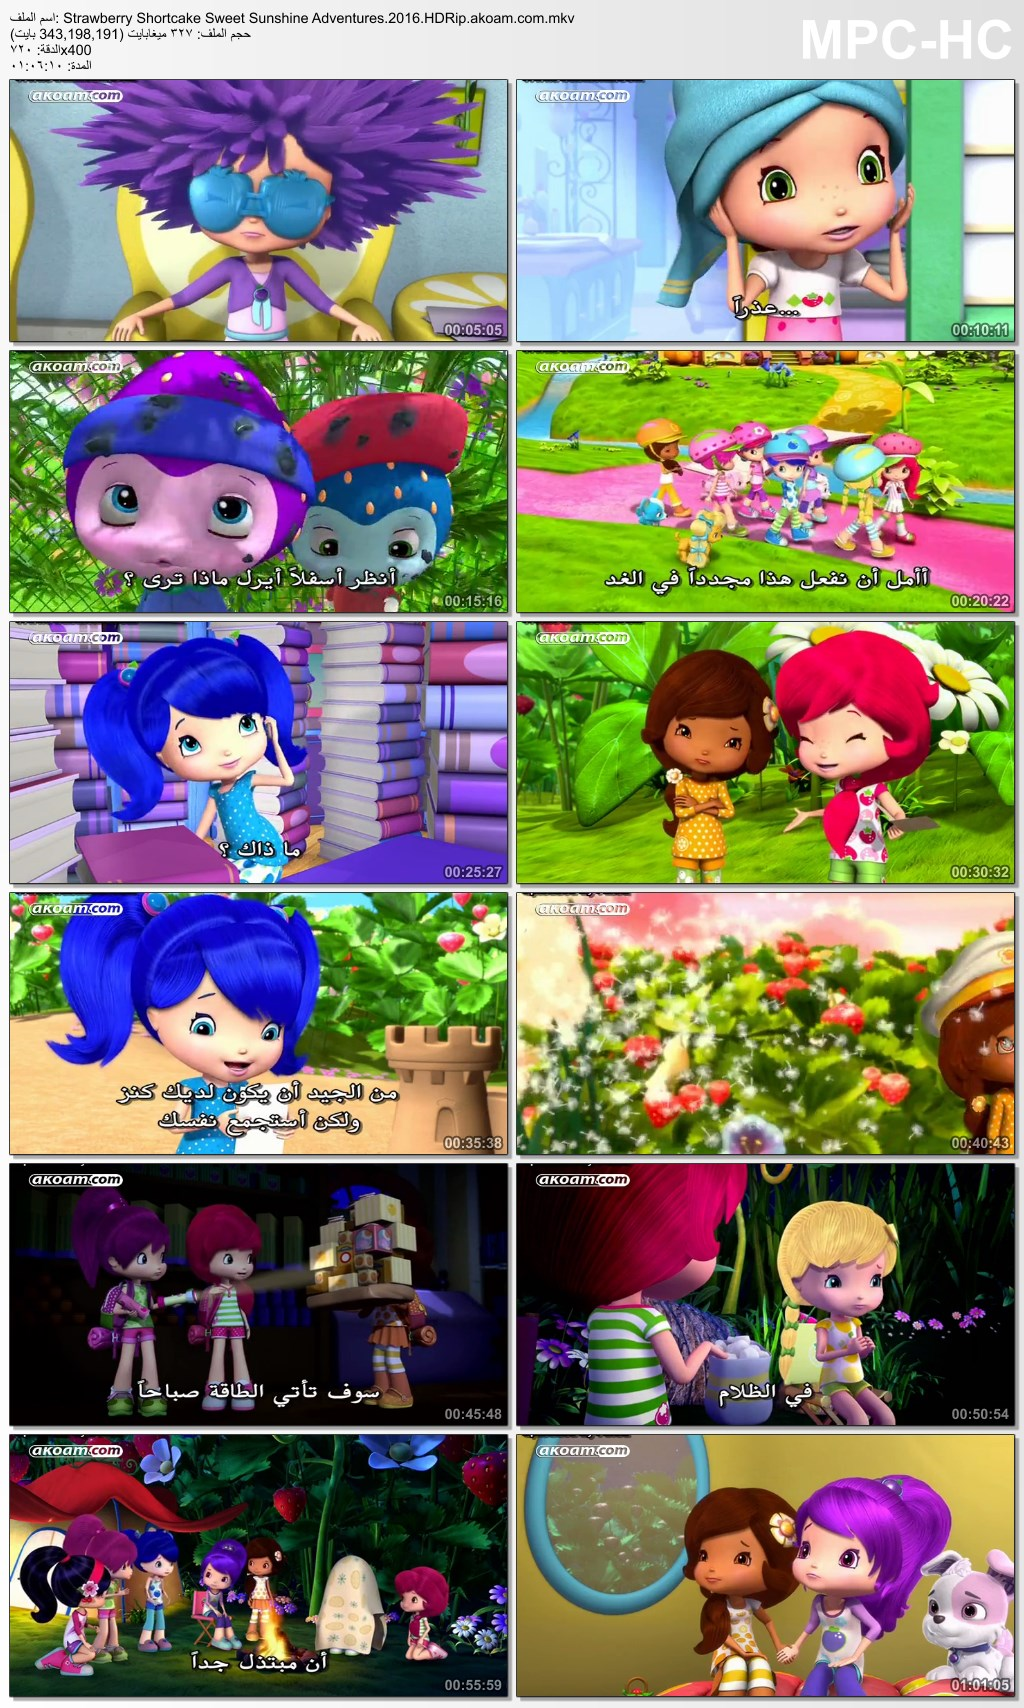 Strawberry Shortcake: Sweet Sunshine Adventures,الانيميشن,المغامرات